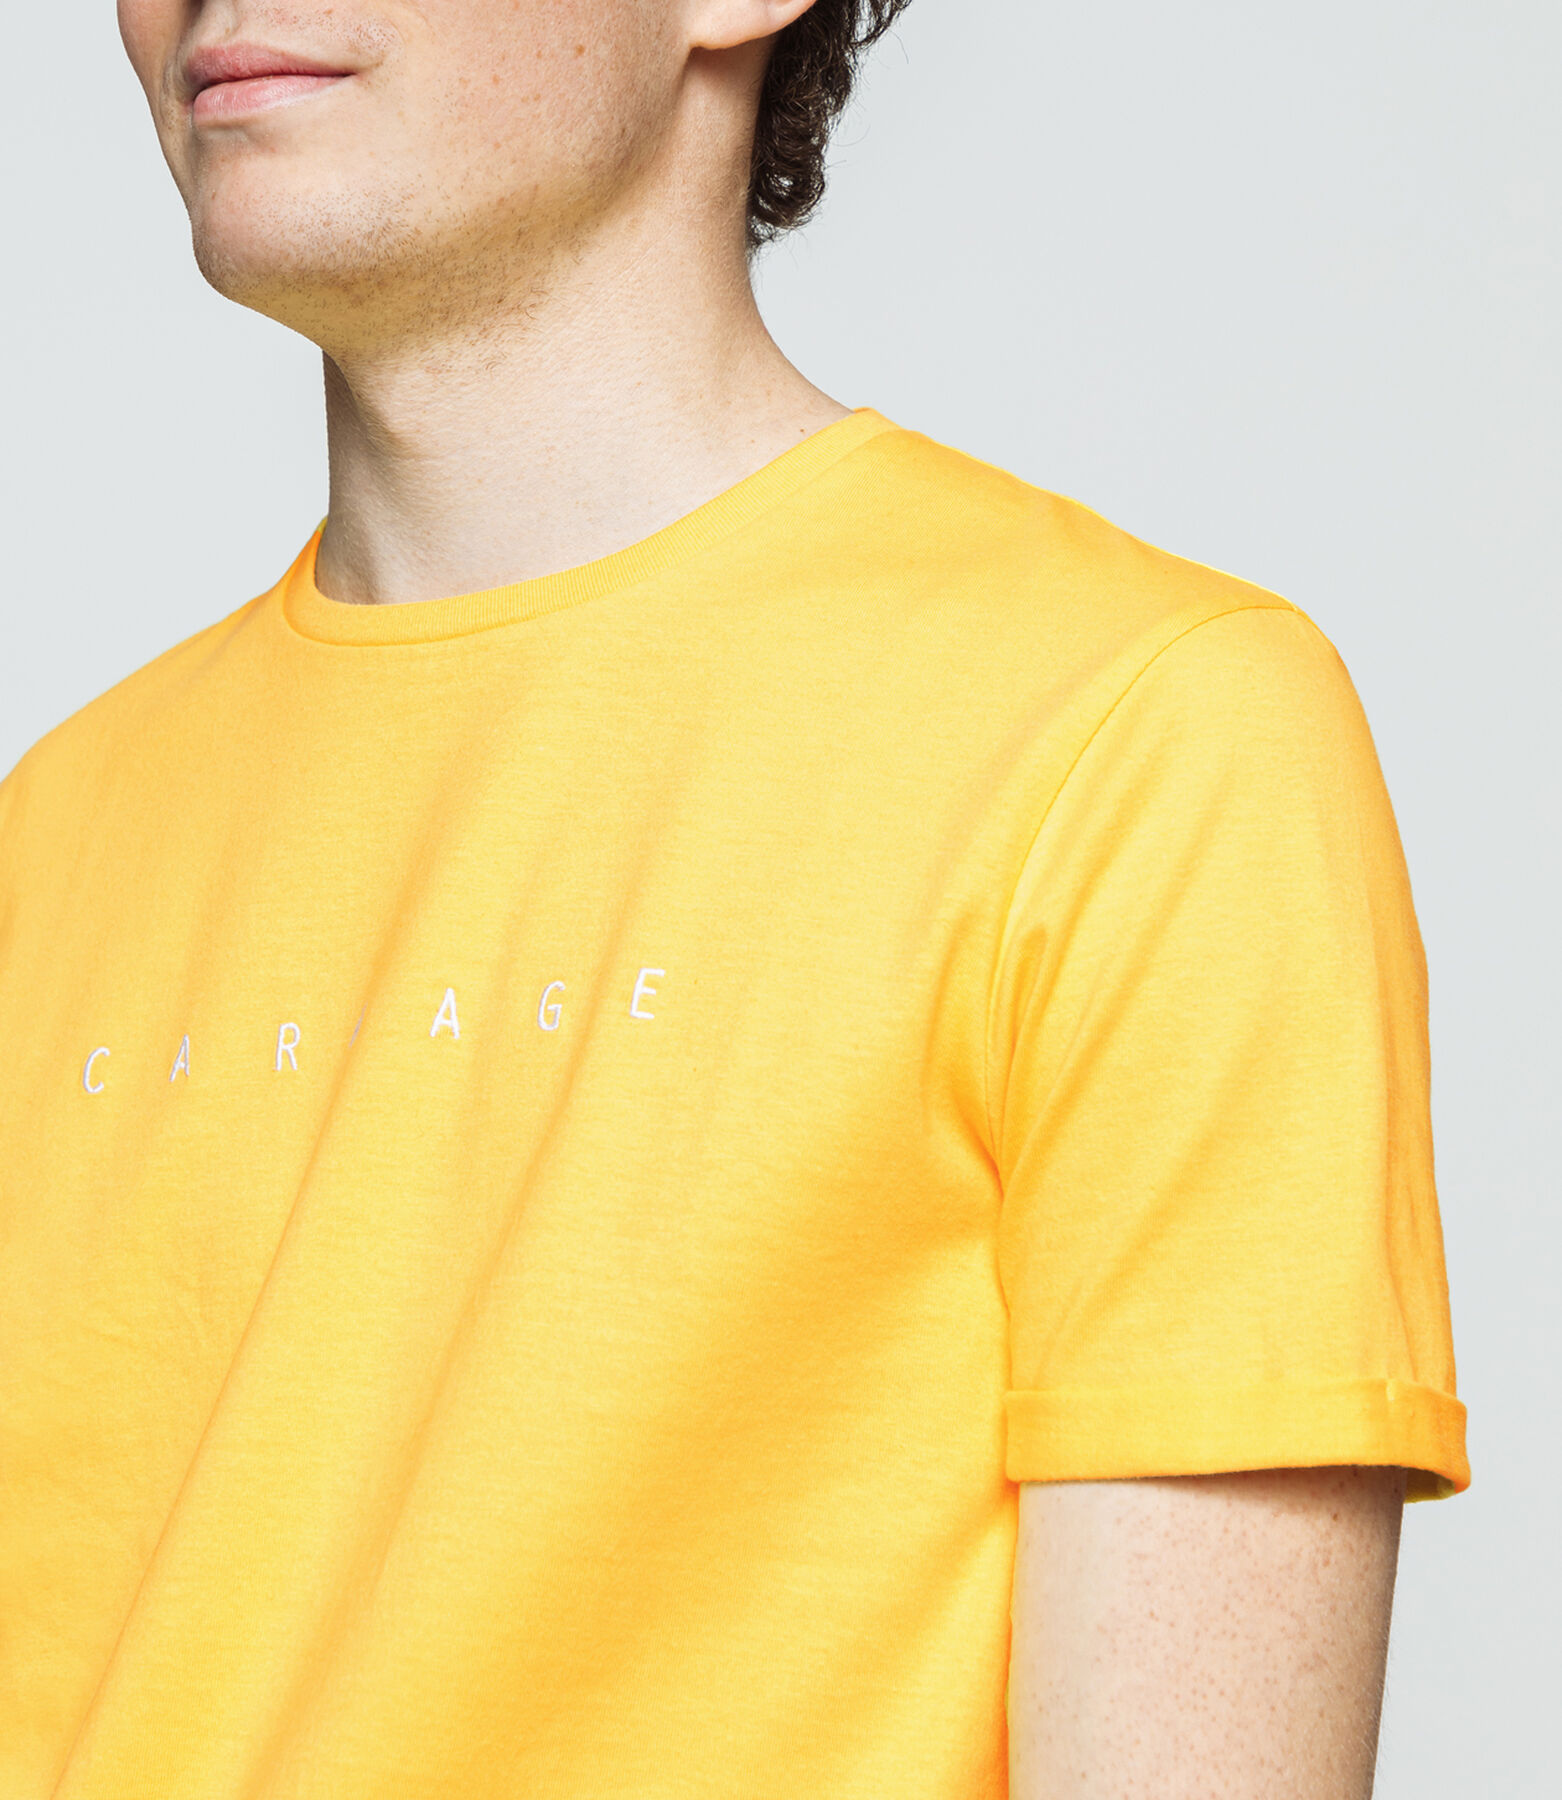 """T-shirt broderie placée """"Carnage"""""""